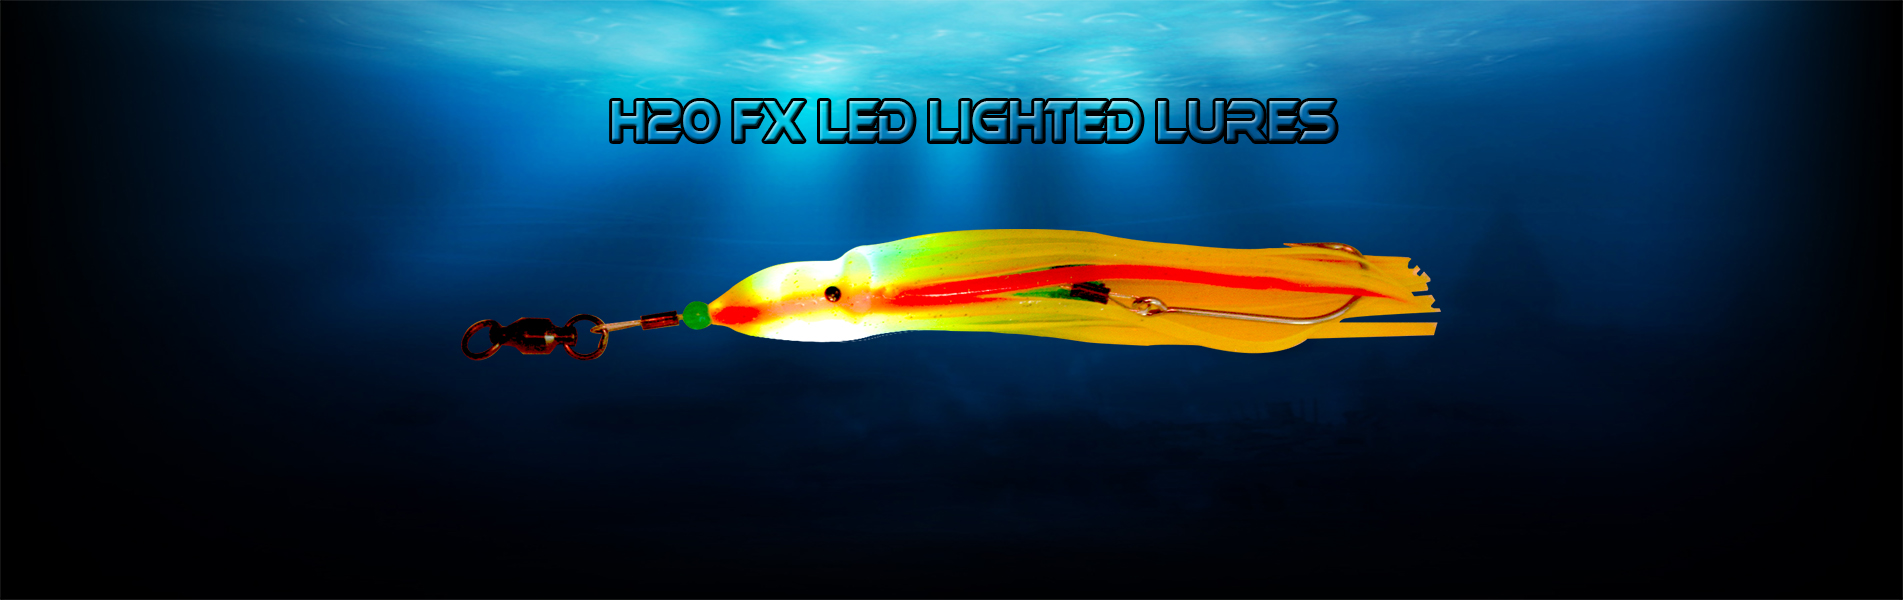 Lighted Lures